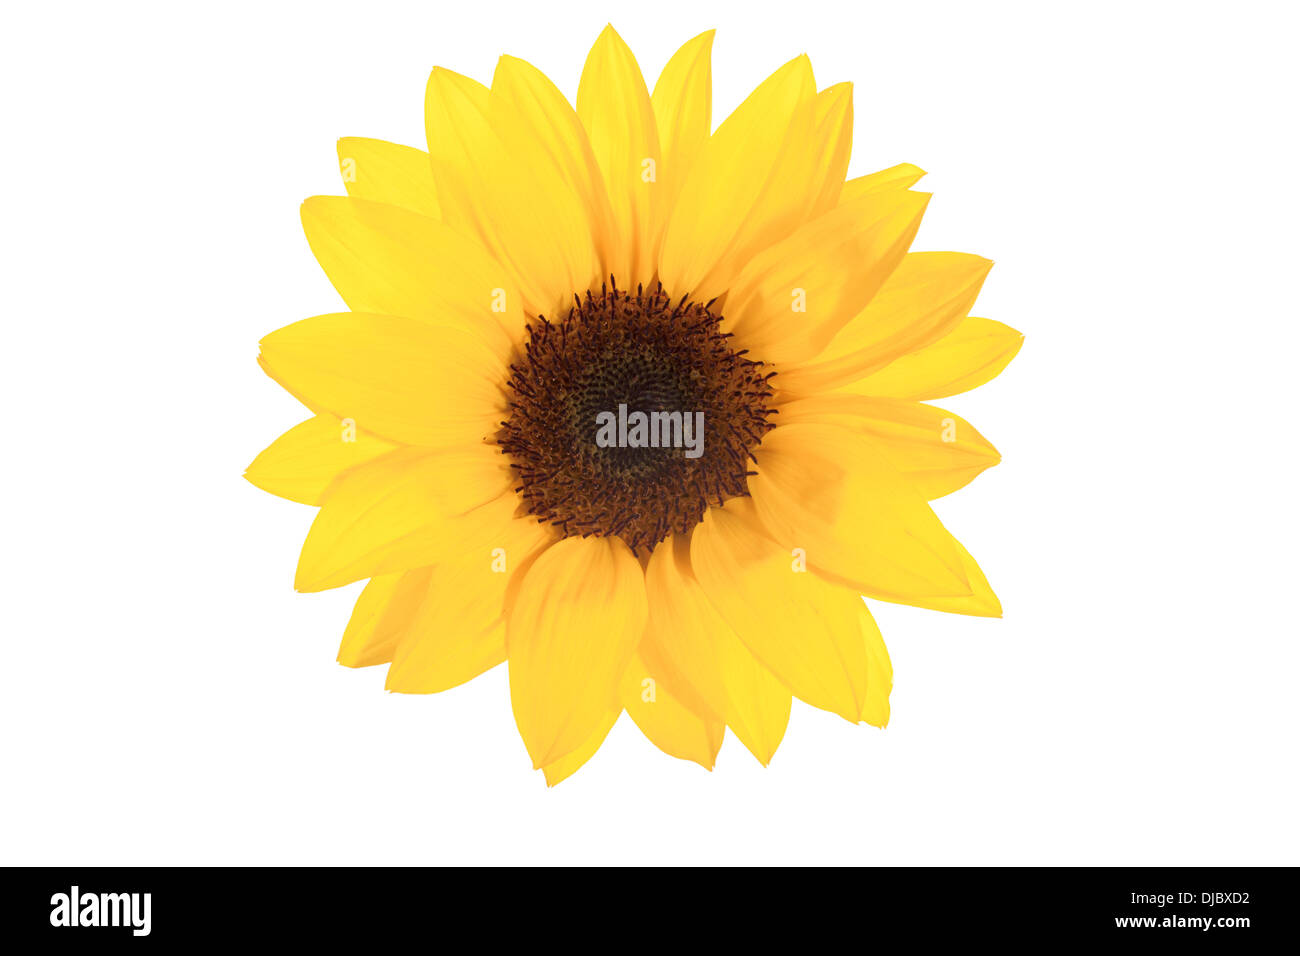 Yellow Sunflower isolated on White background with shallow depth of field. - Stock Image